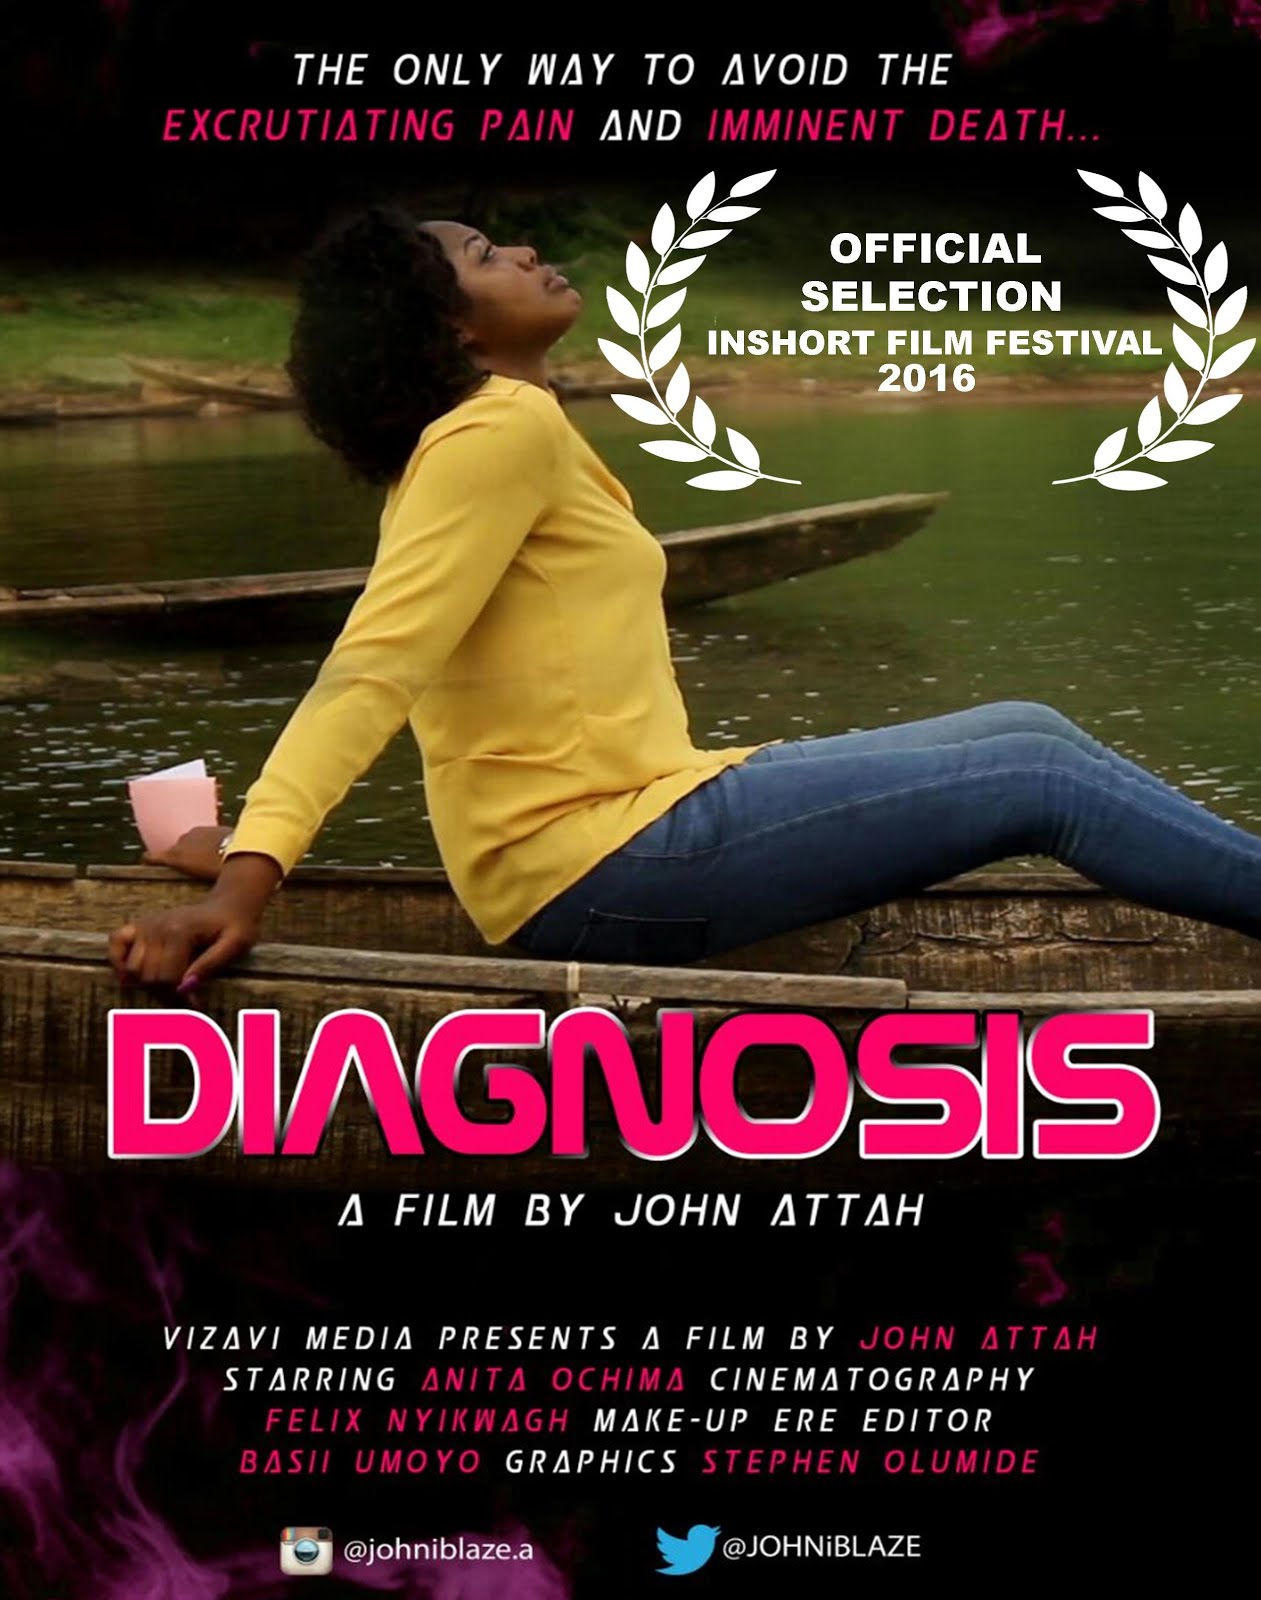 Watch DIAGNOSIS shortfilm.